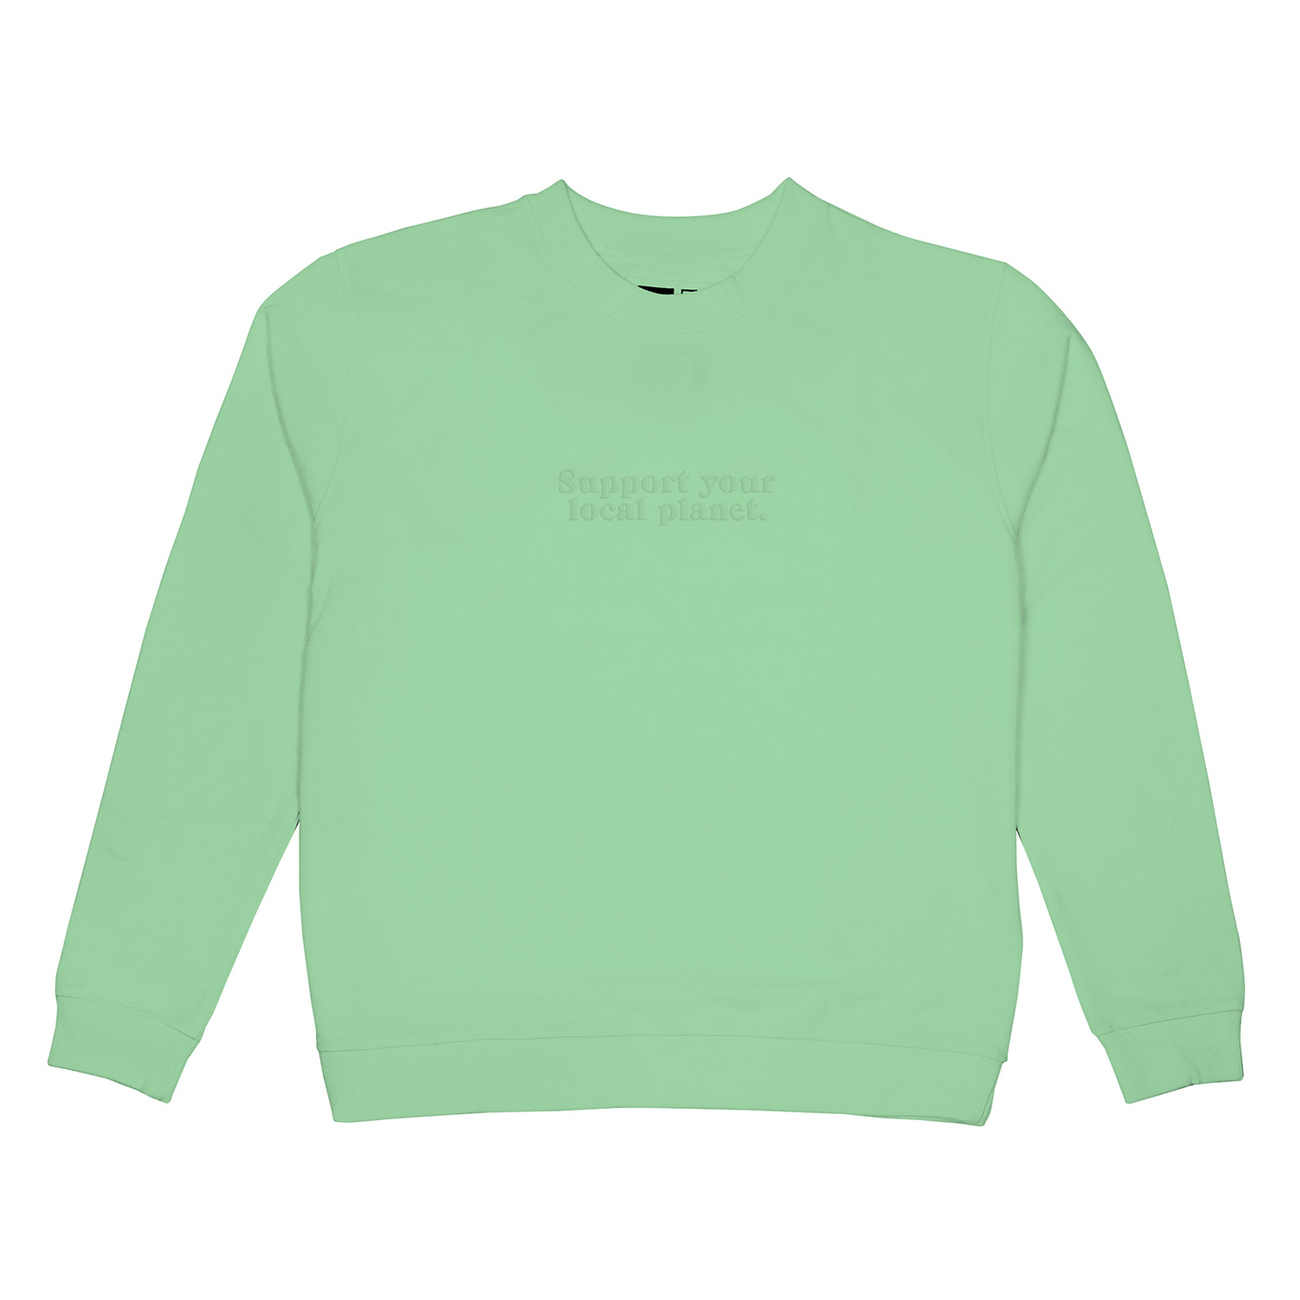 Sweatshirt Ystad Planet Support Mint